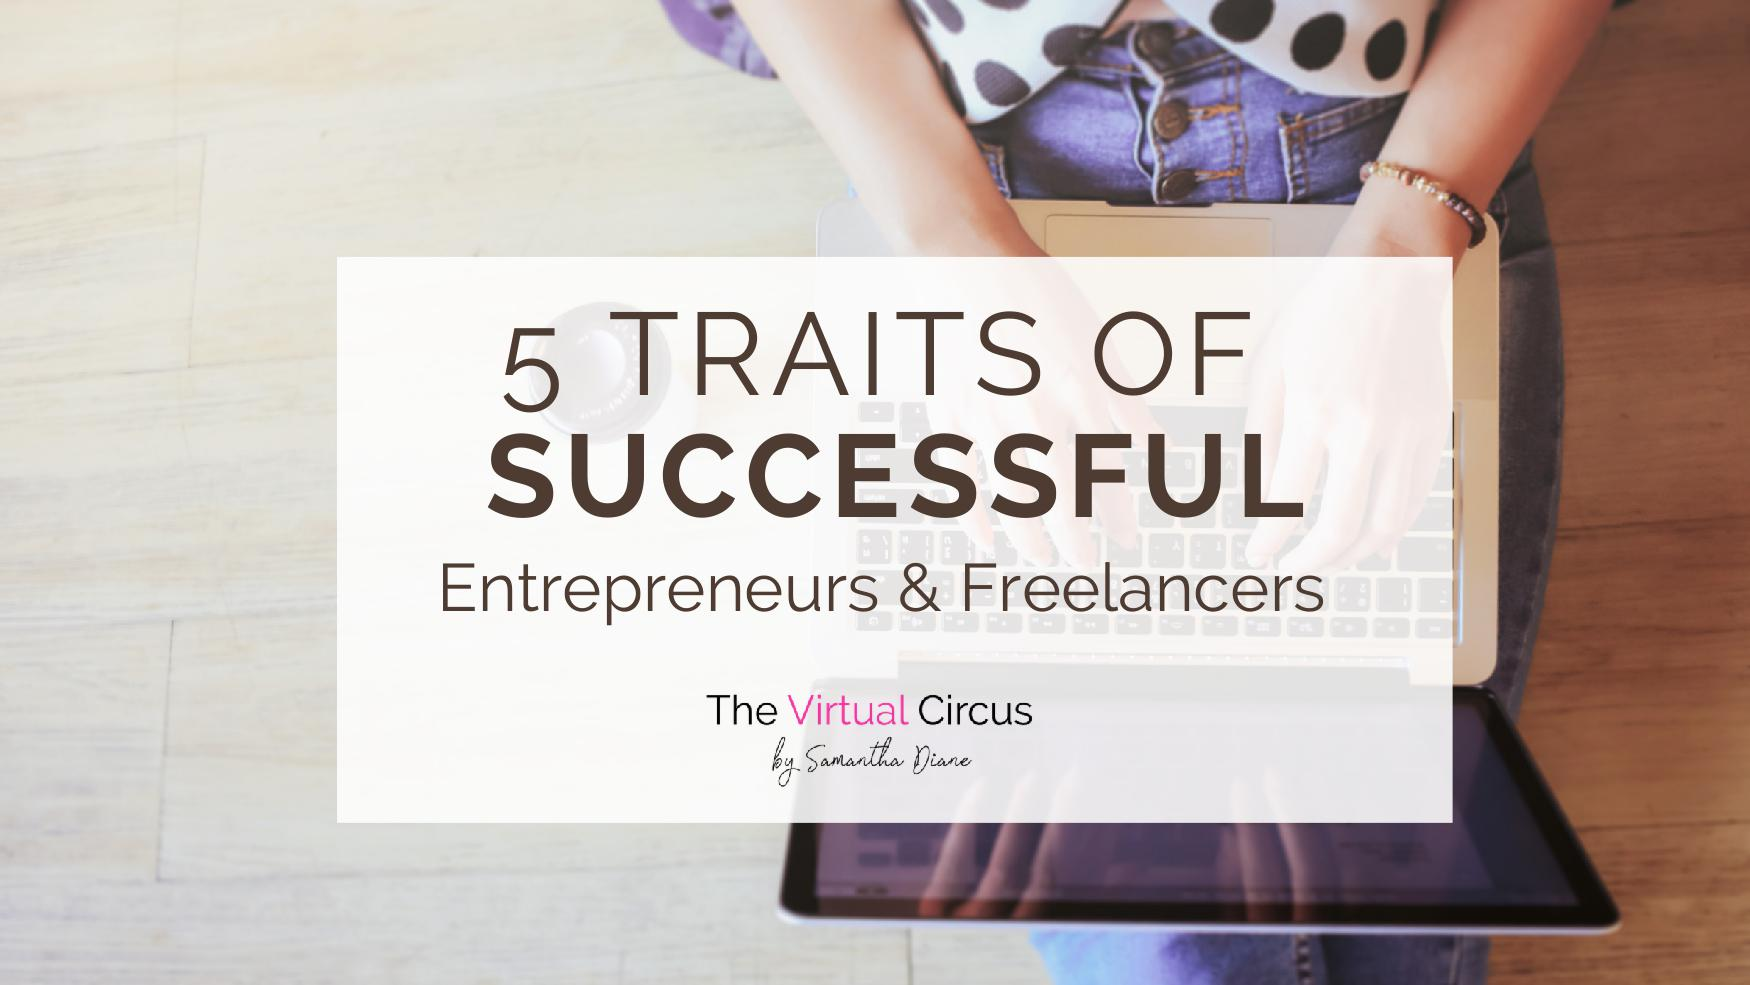 Blog Header-5 Traits of Successful Entrepreneurs & Freelancers.jpg